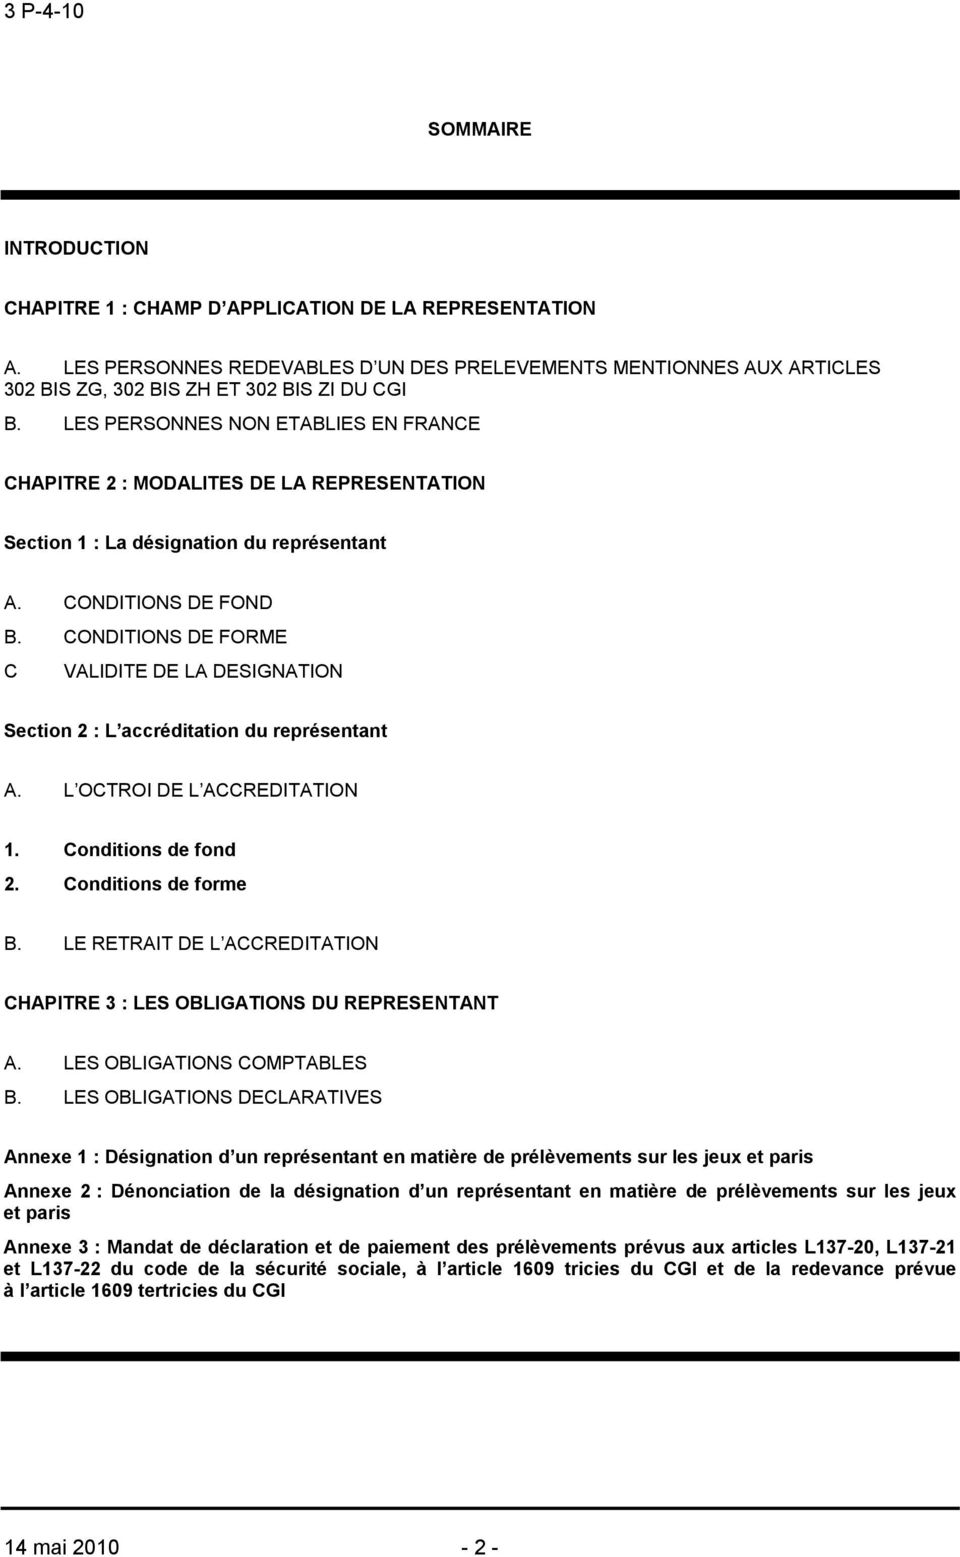 CONDITIONS DE FORME C VALIDITE DE LA DESIGNATION Section 2 : L accréditation du représentant A. L OCTROI DE L ACCREDITATION 1. Conditions de fond 2. Conditions de forme B.